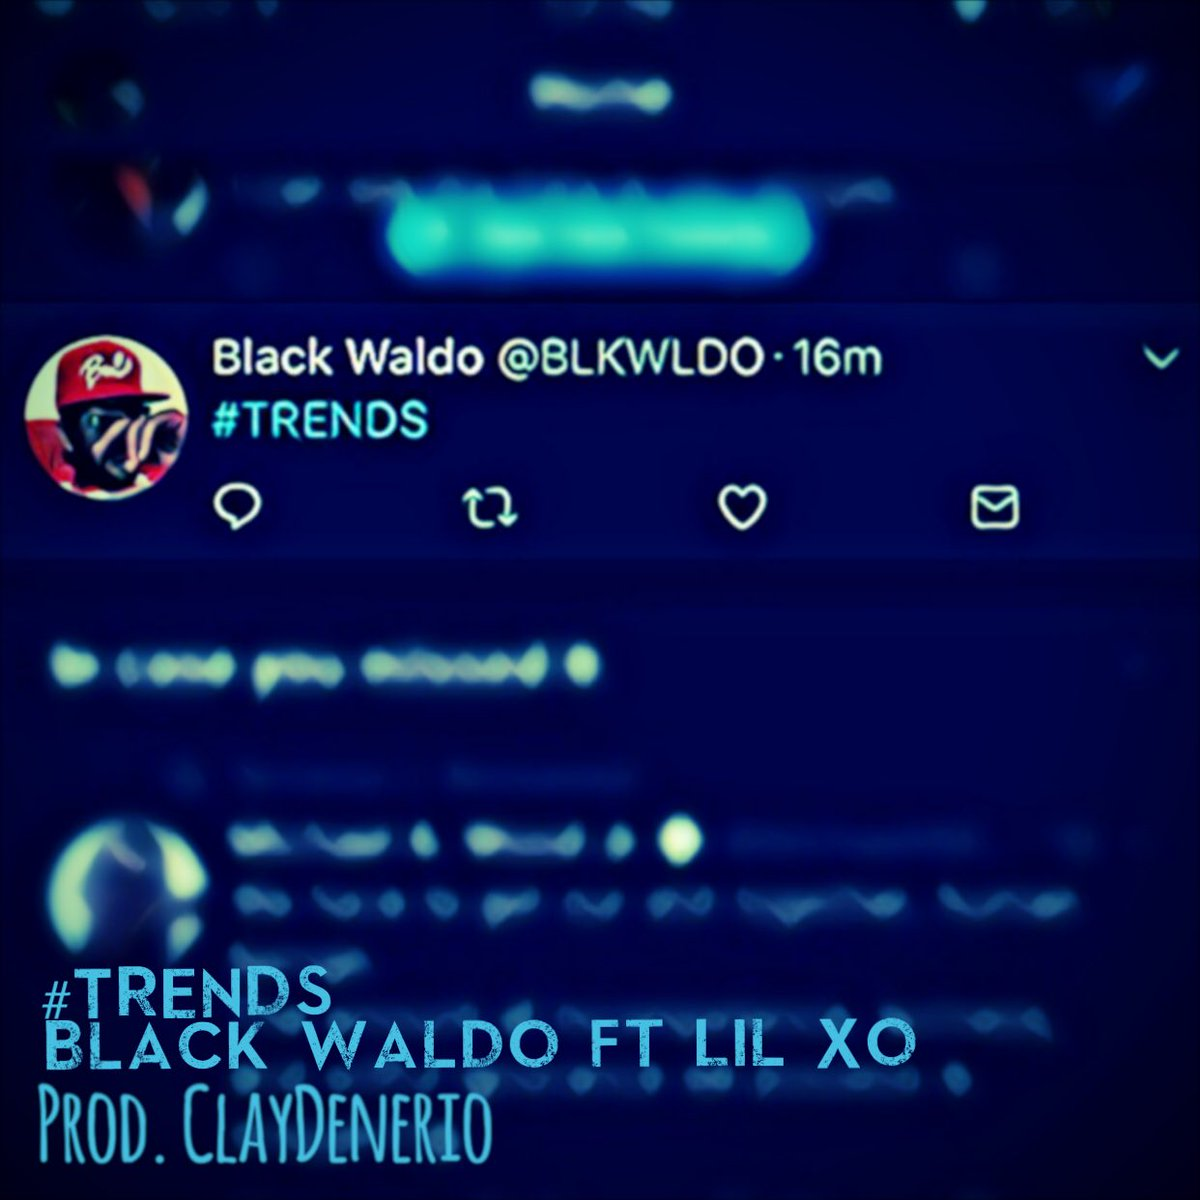 Friday! My first release &quot;#TRENDS&quot; follow my SoundCloud Black Waldo <br>http://pic.twitter.com/9mneOuH7Ld